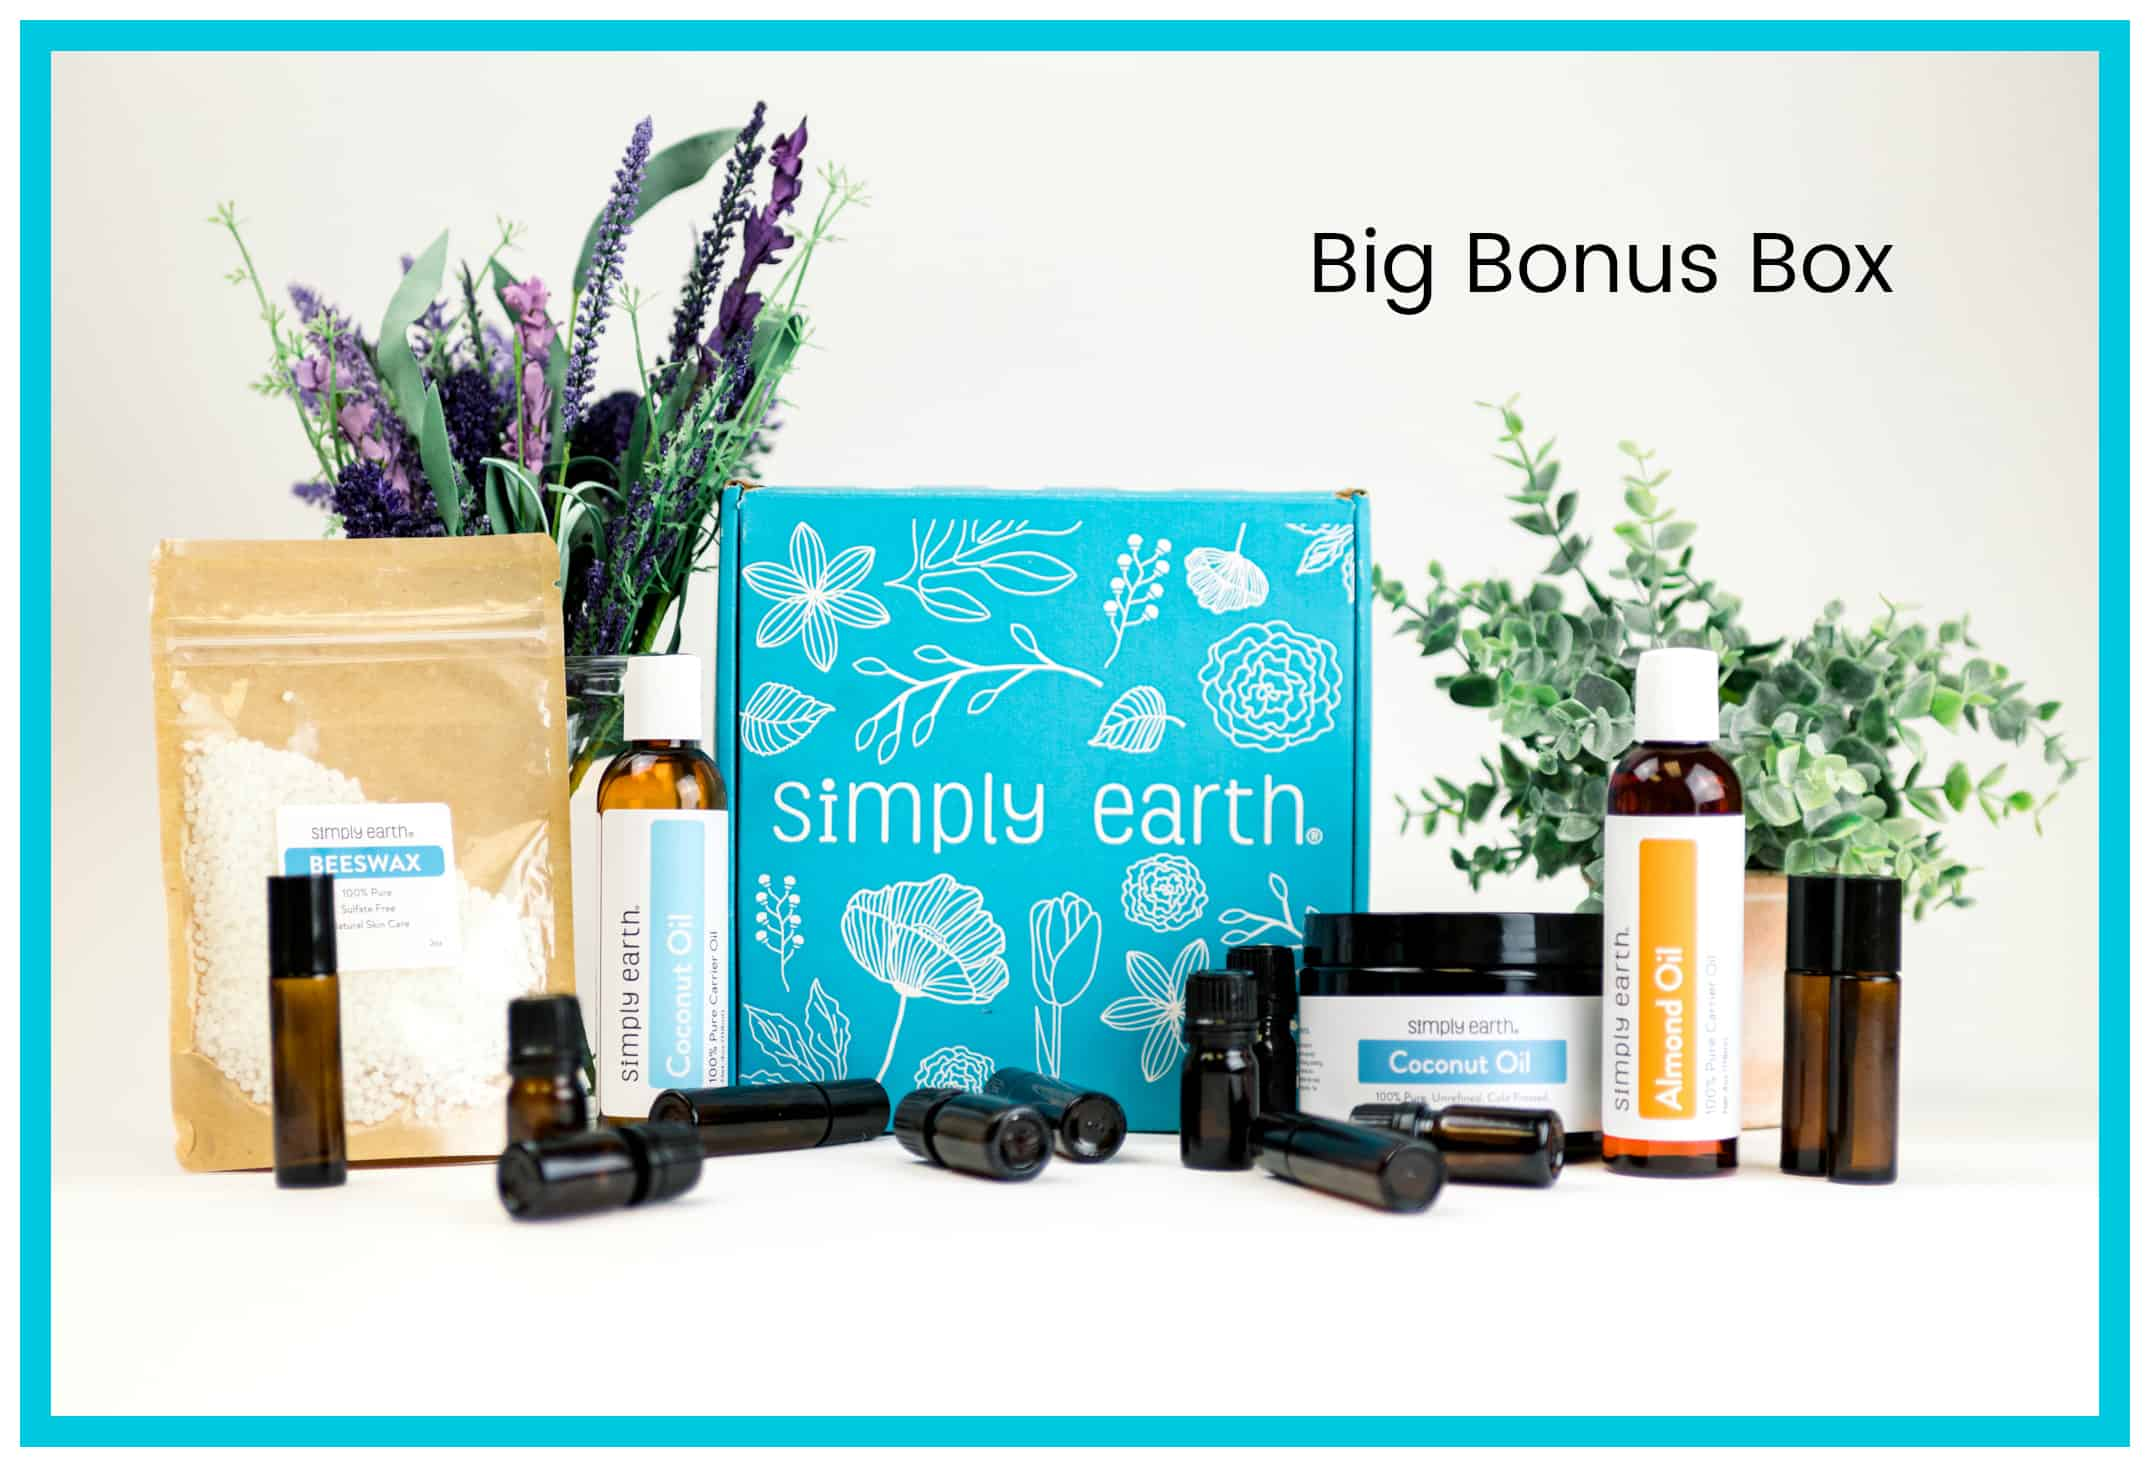 "With your first Simply Earth essential oils recipe box, they also send a ""Big Bonus Box"" that contains 2-4 oz bottles of carrier oils, a tub of solid coconut oil, beeswax, 6 roller bottles, and 6-5ml dropper bottles for blending, absolutely free. They replenish it all for free every 6 months as well. This box alone has a value of nearly $45. #essentialoils #aromatherapy #simplyearth"